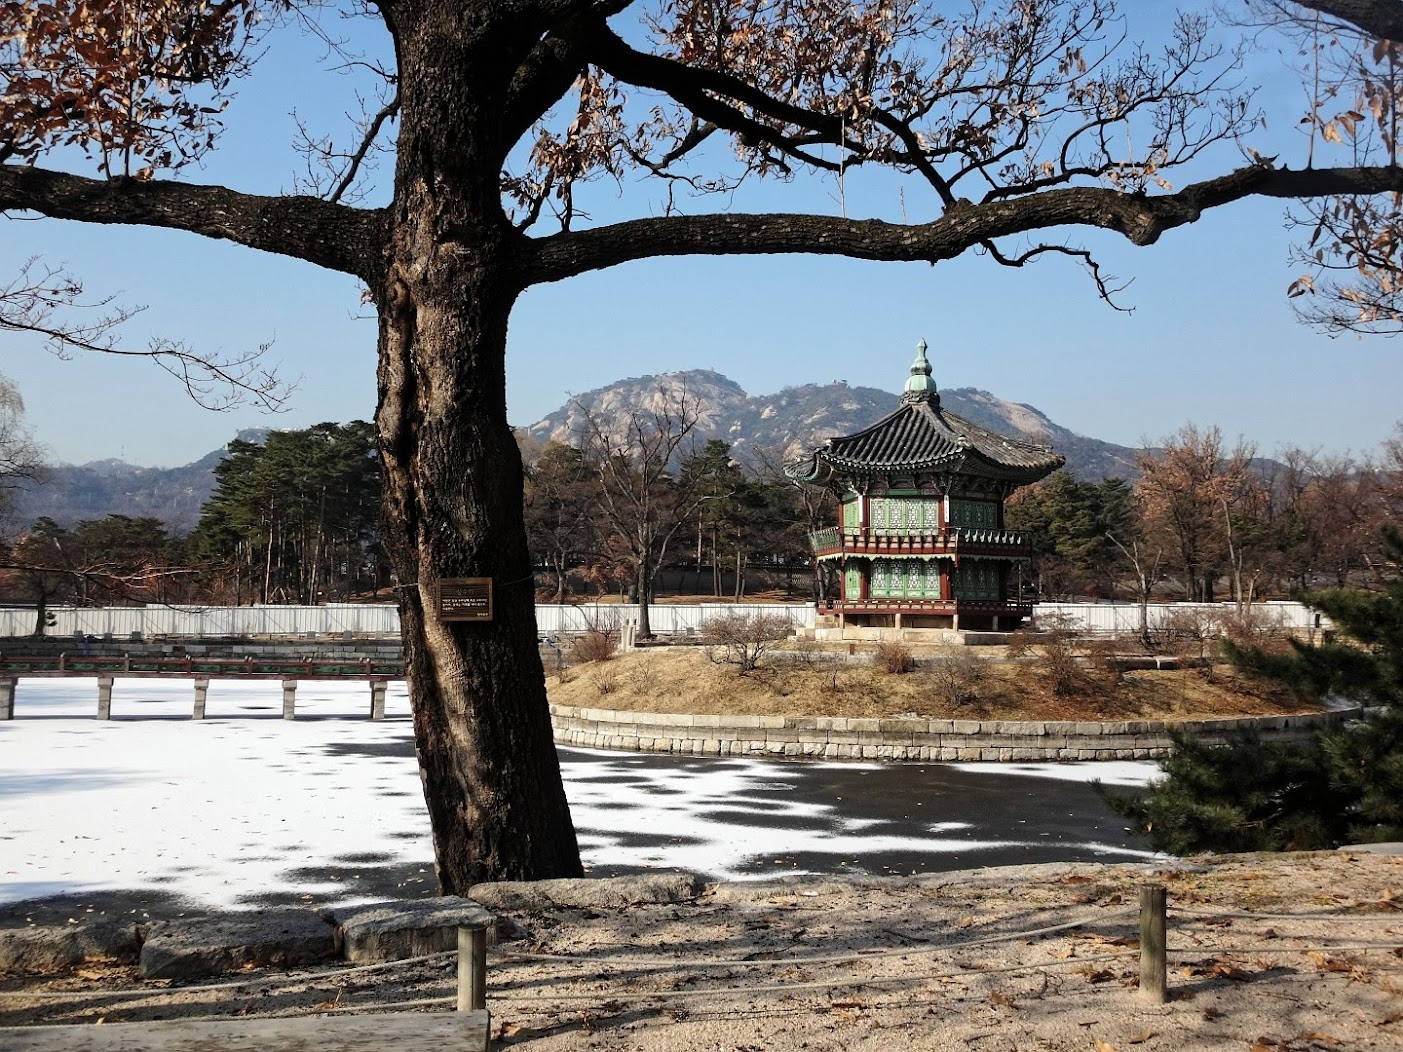 Pavillion in the northern lake of Gyeongbokgung Palace, Seoul, Korea